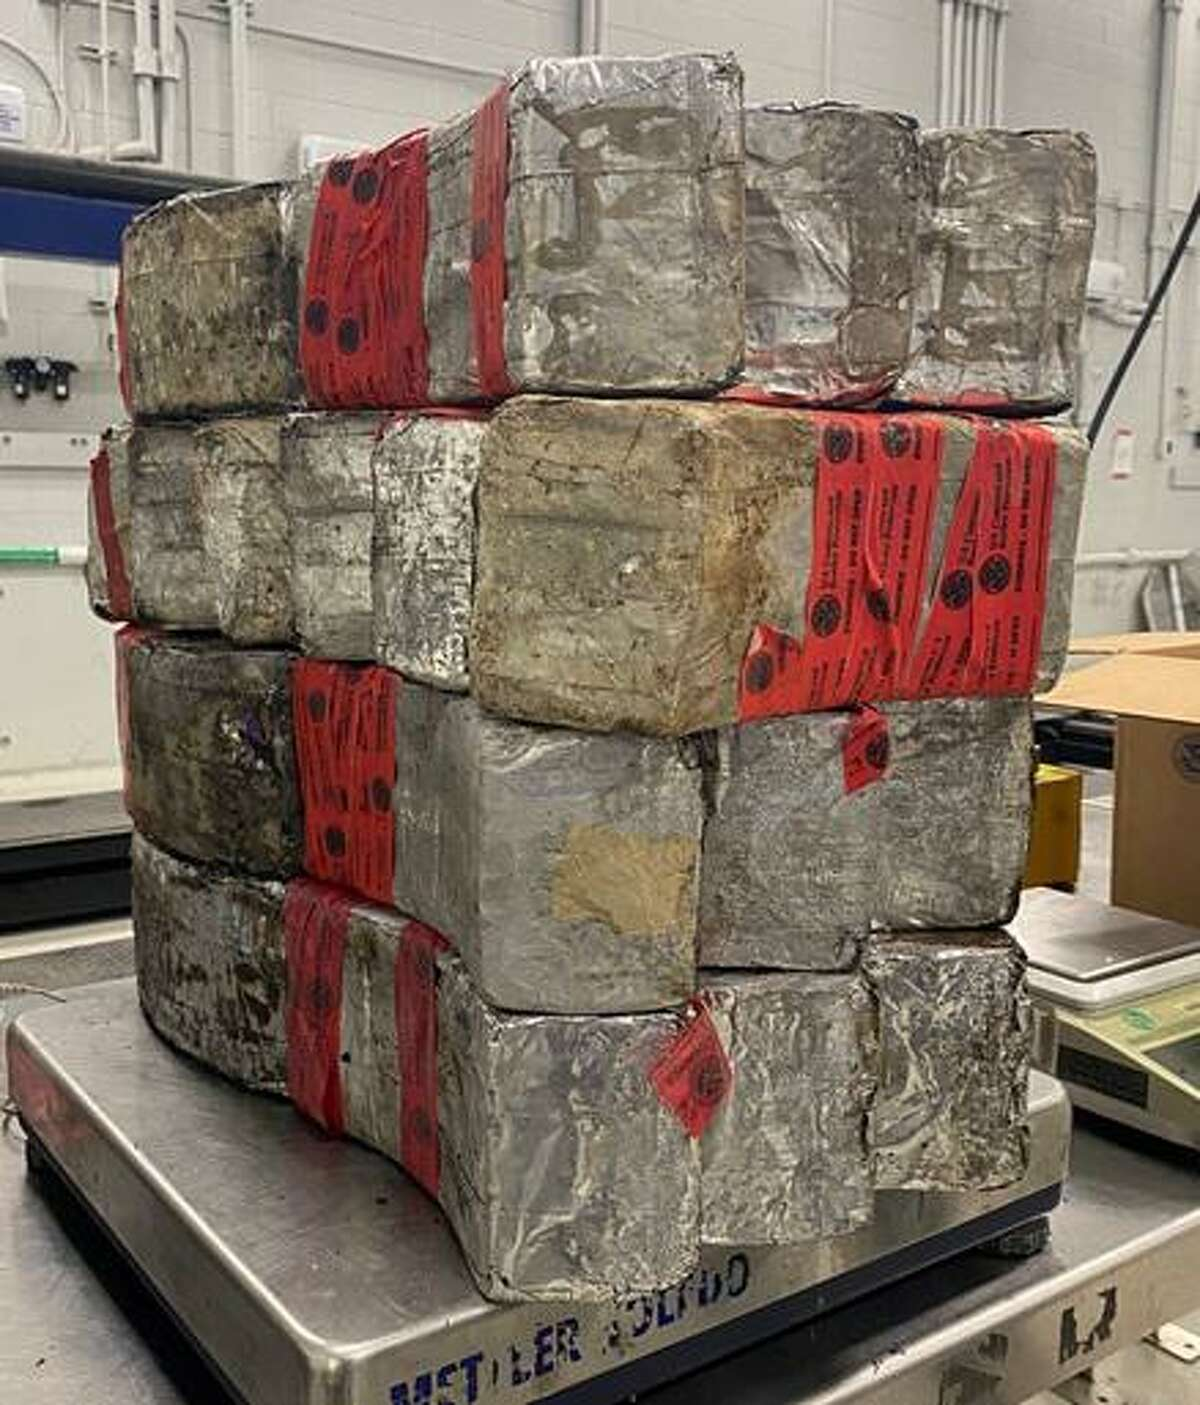 U.S. Customs and Border Protection officers said they seized these $2.6 million in meth at the Juarez-Lincoln International Bridge. One person was arrested in connection with the case.